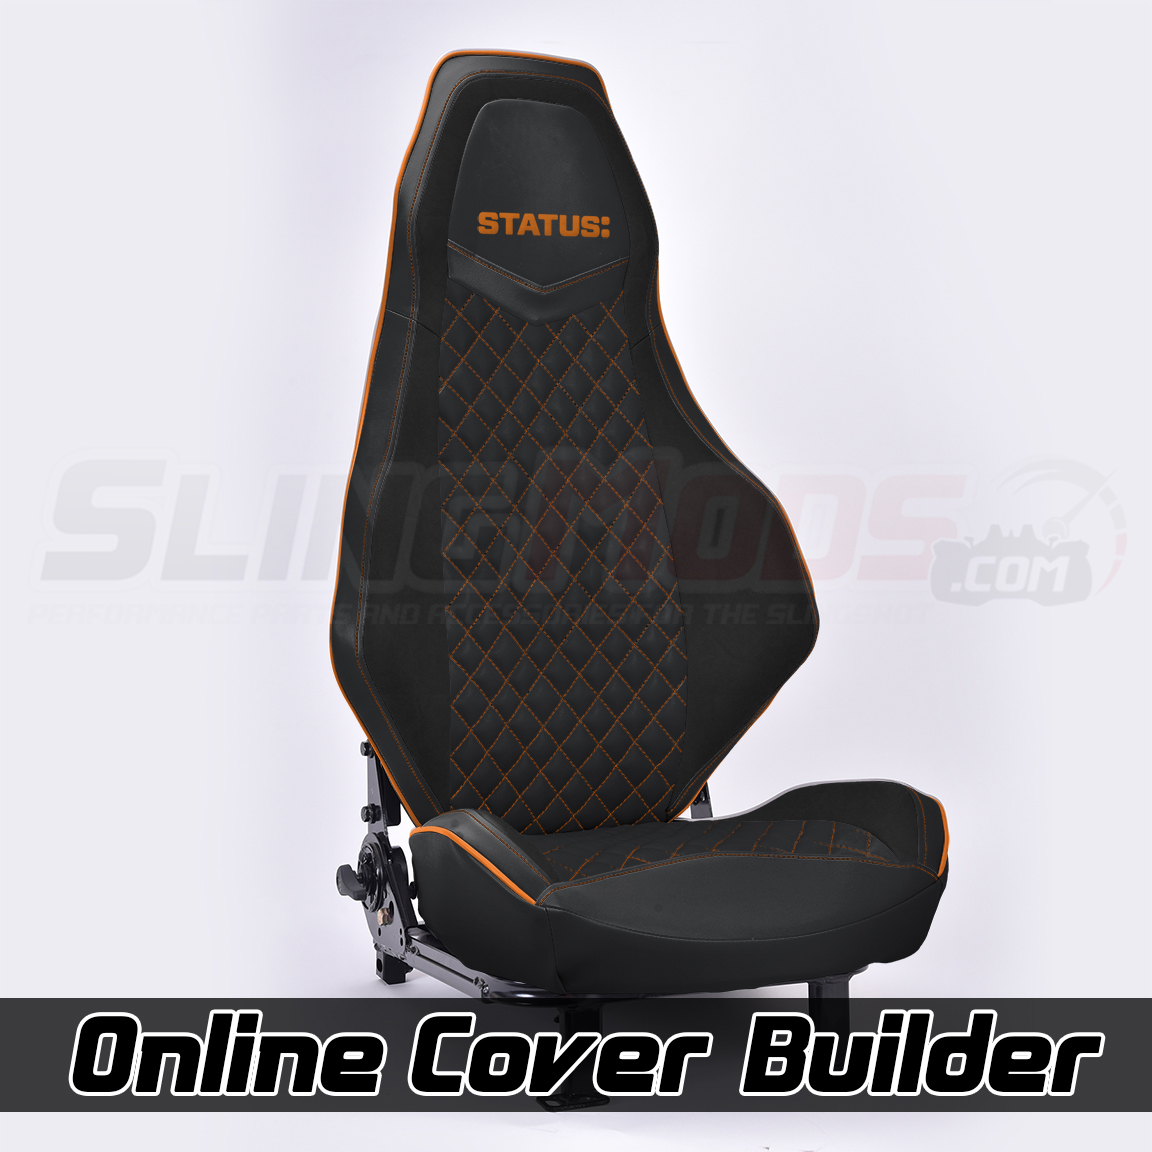 b296114b7f Status Racing Velocity Sport SLR Seat Covers for the Polaris ...